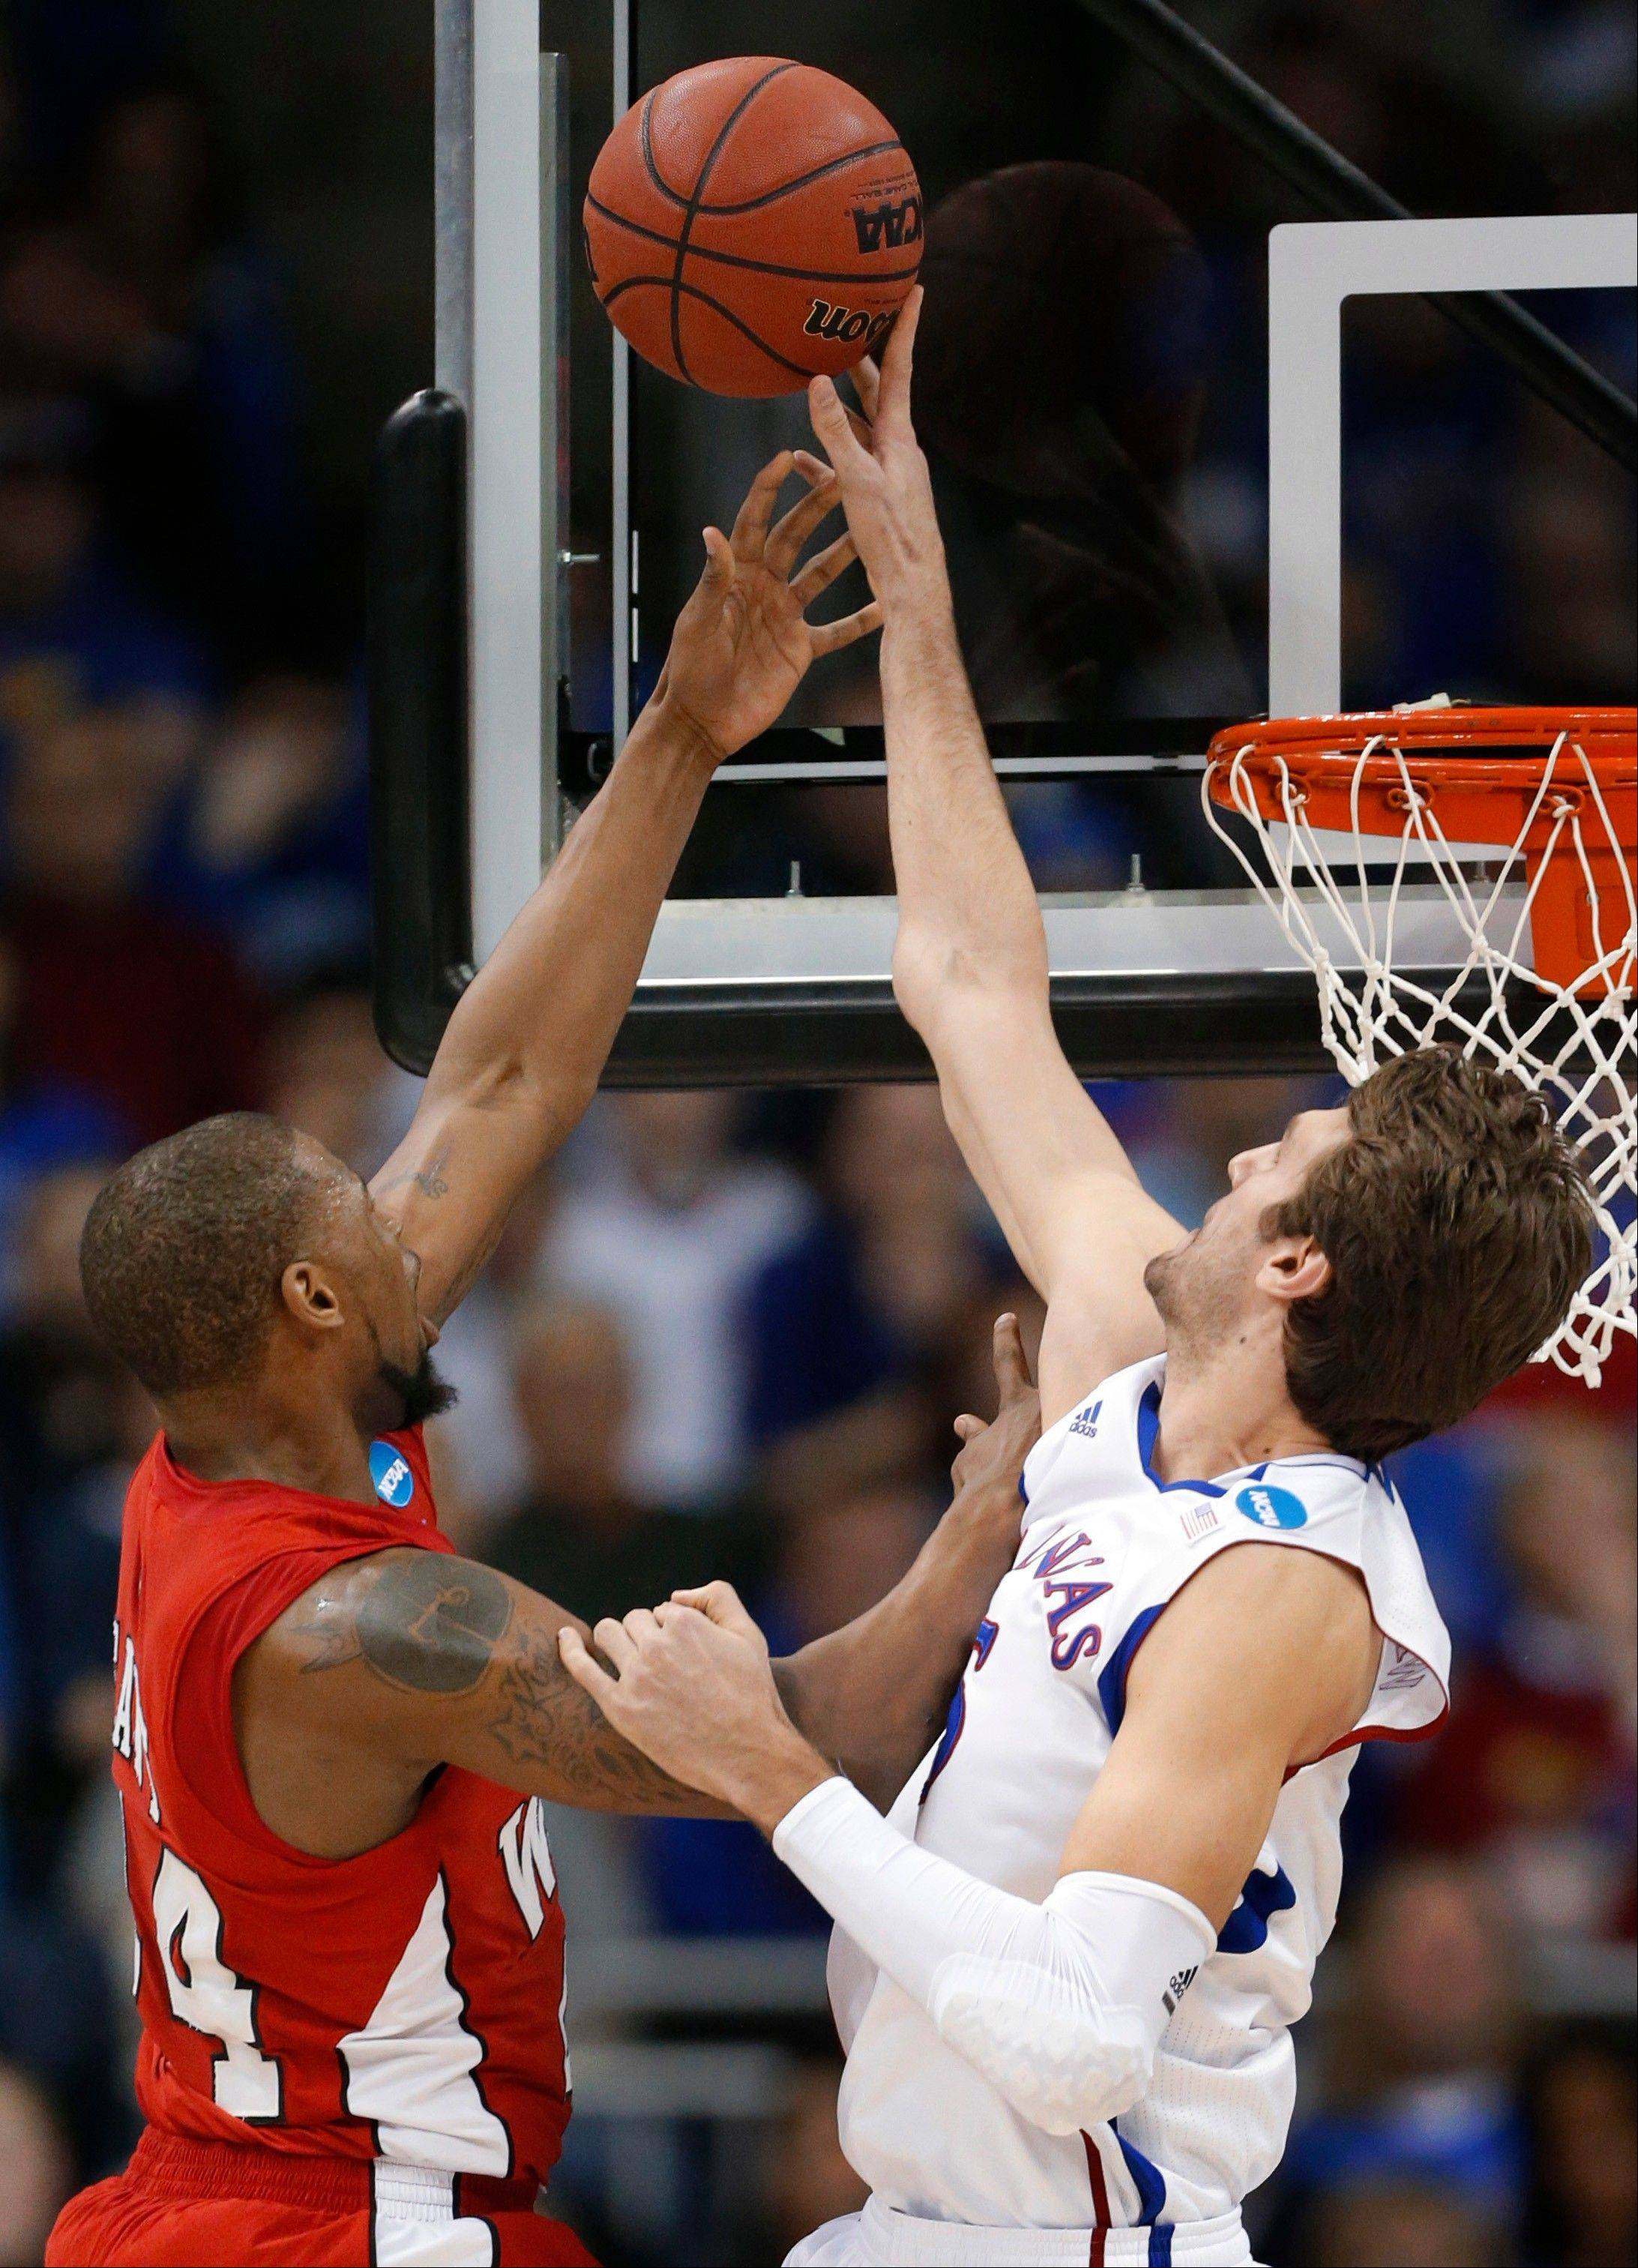 Kansas center Jeff Withey (5) blocks a shot by Western Kentucky forward George Fant (44) during the first half of a second-round game in the NCAA men's college basketball tournament in Kansas City, Mo., Friday, March 22, 2013.